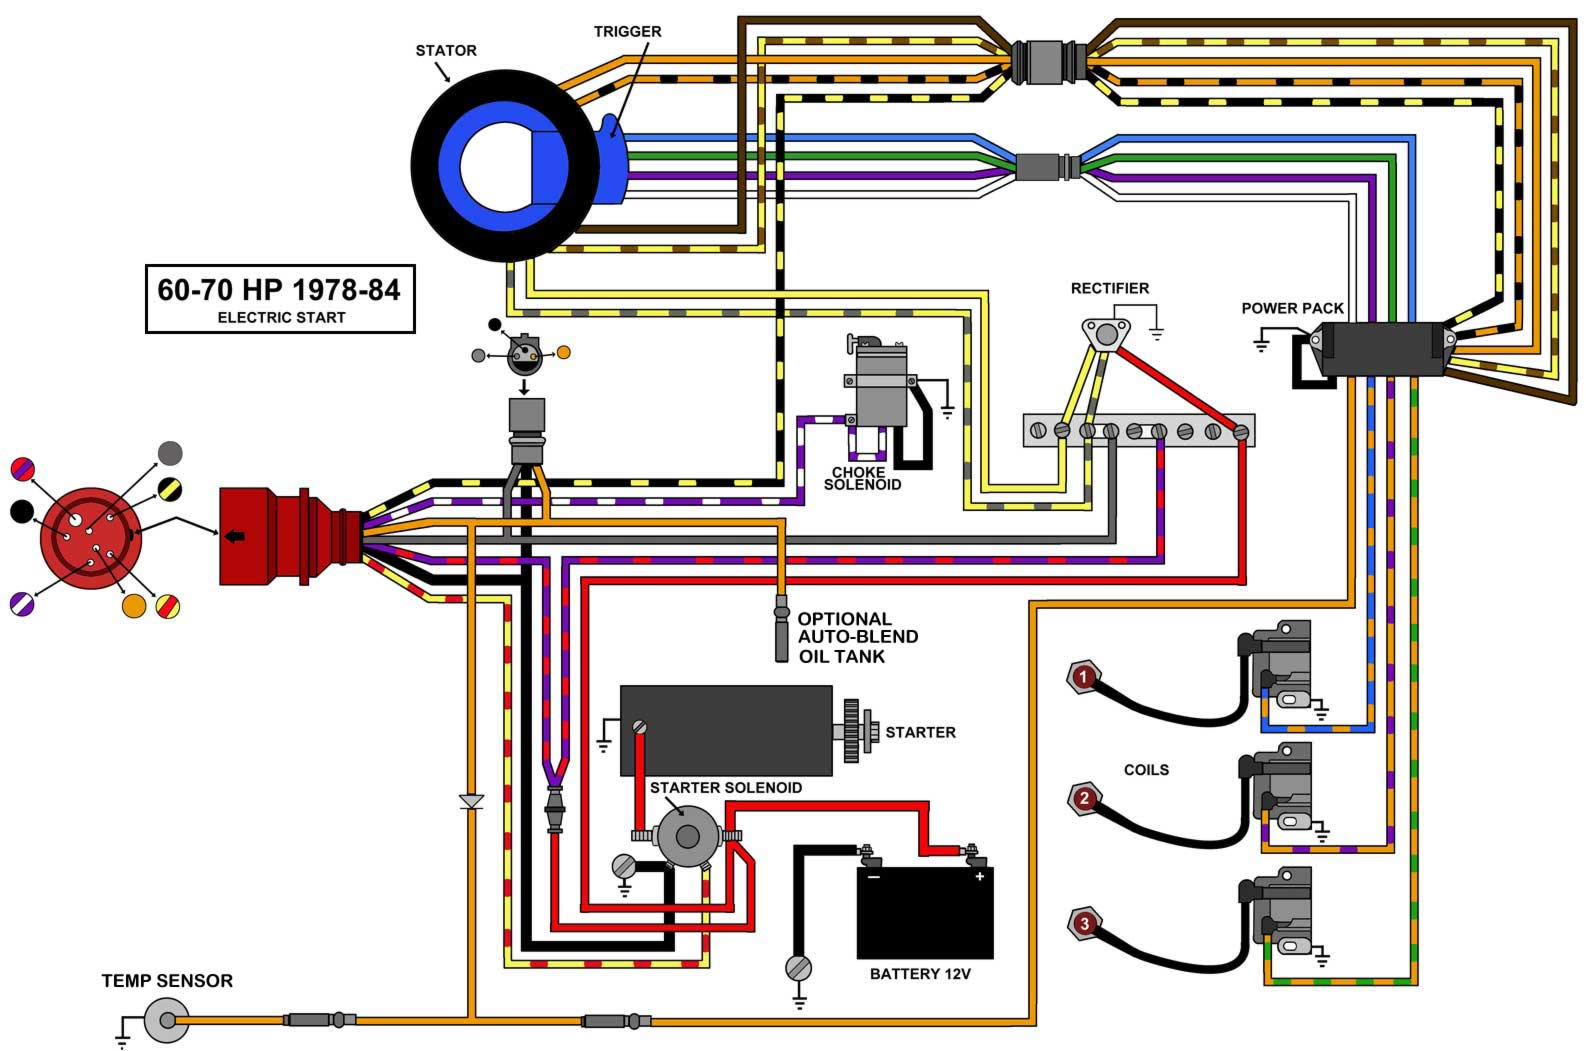 78 84_3 CYL_EL wiring tach from johnson controls page 1 iboats boating forums  at edmiracle.co